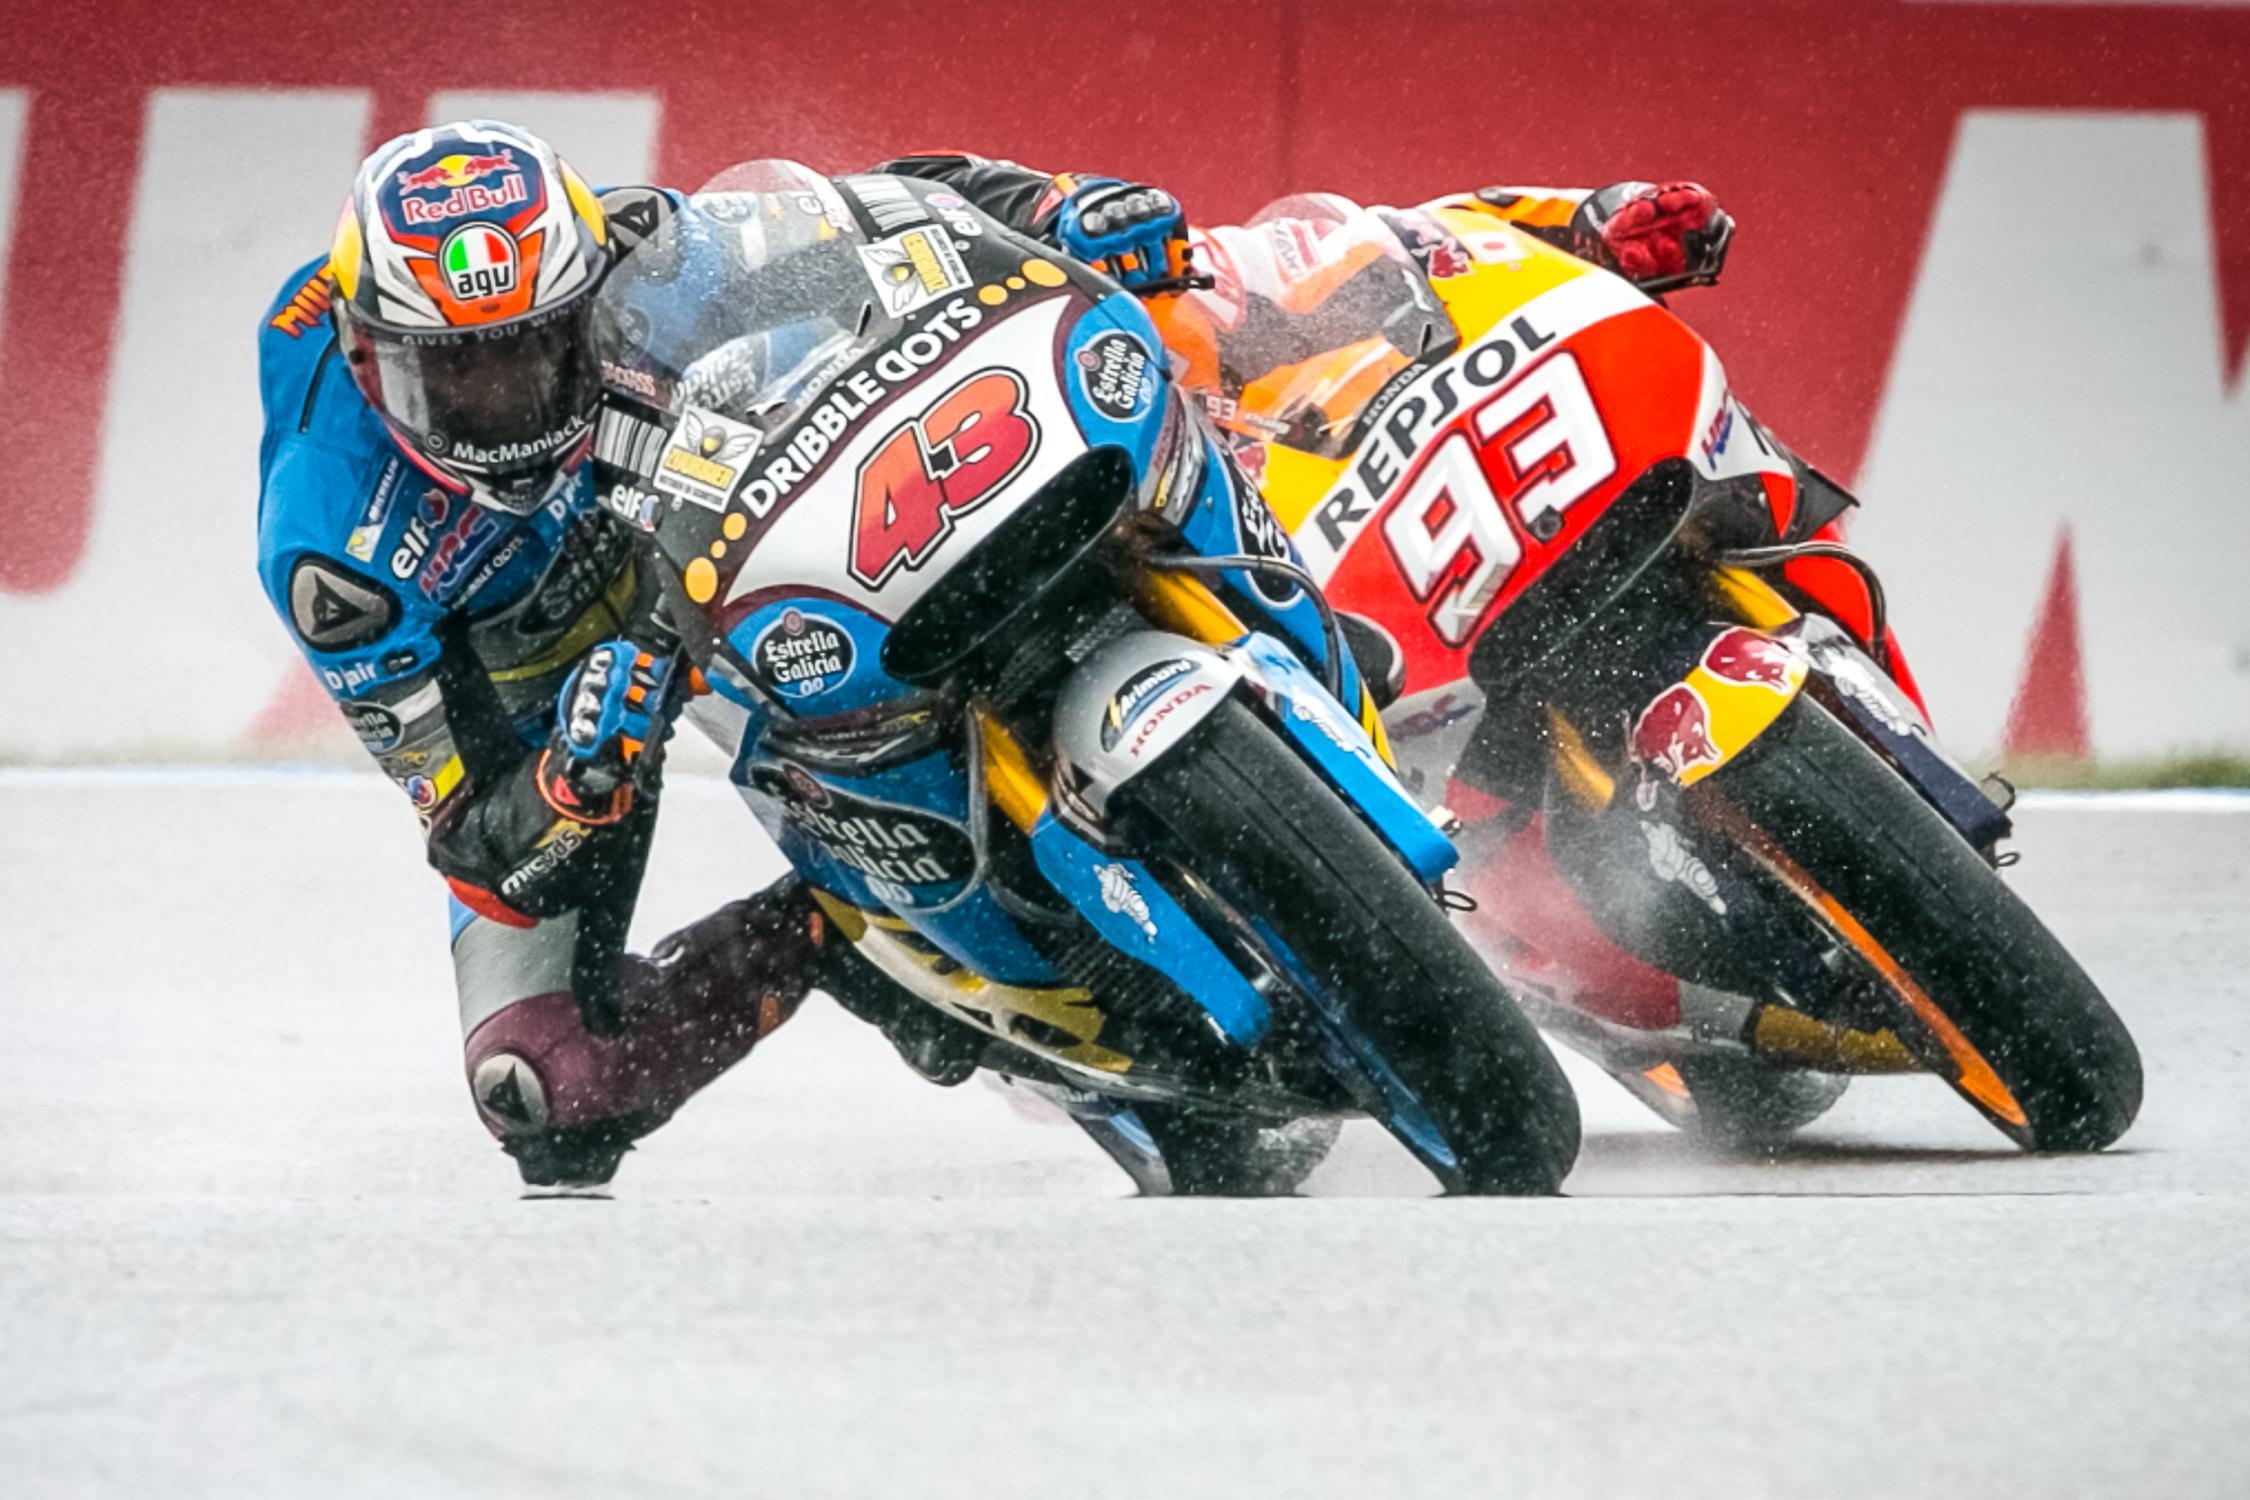 [GP] Assen _gp_8966-2_0.gallery_full_top_fullscreen